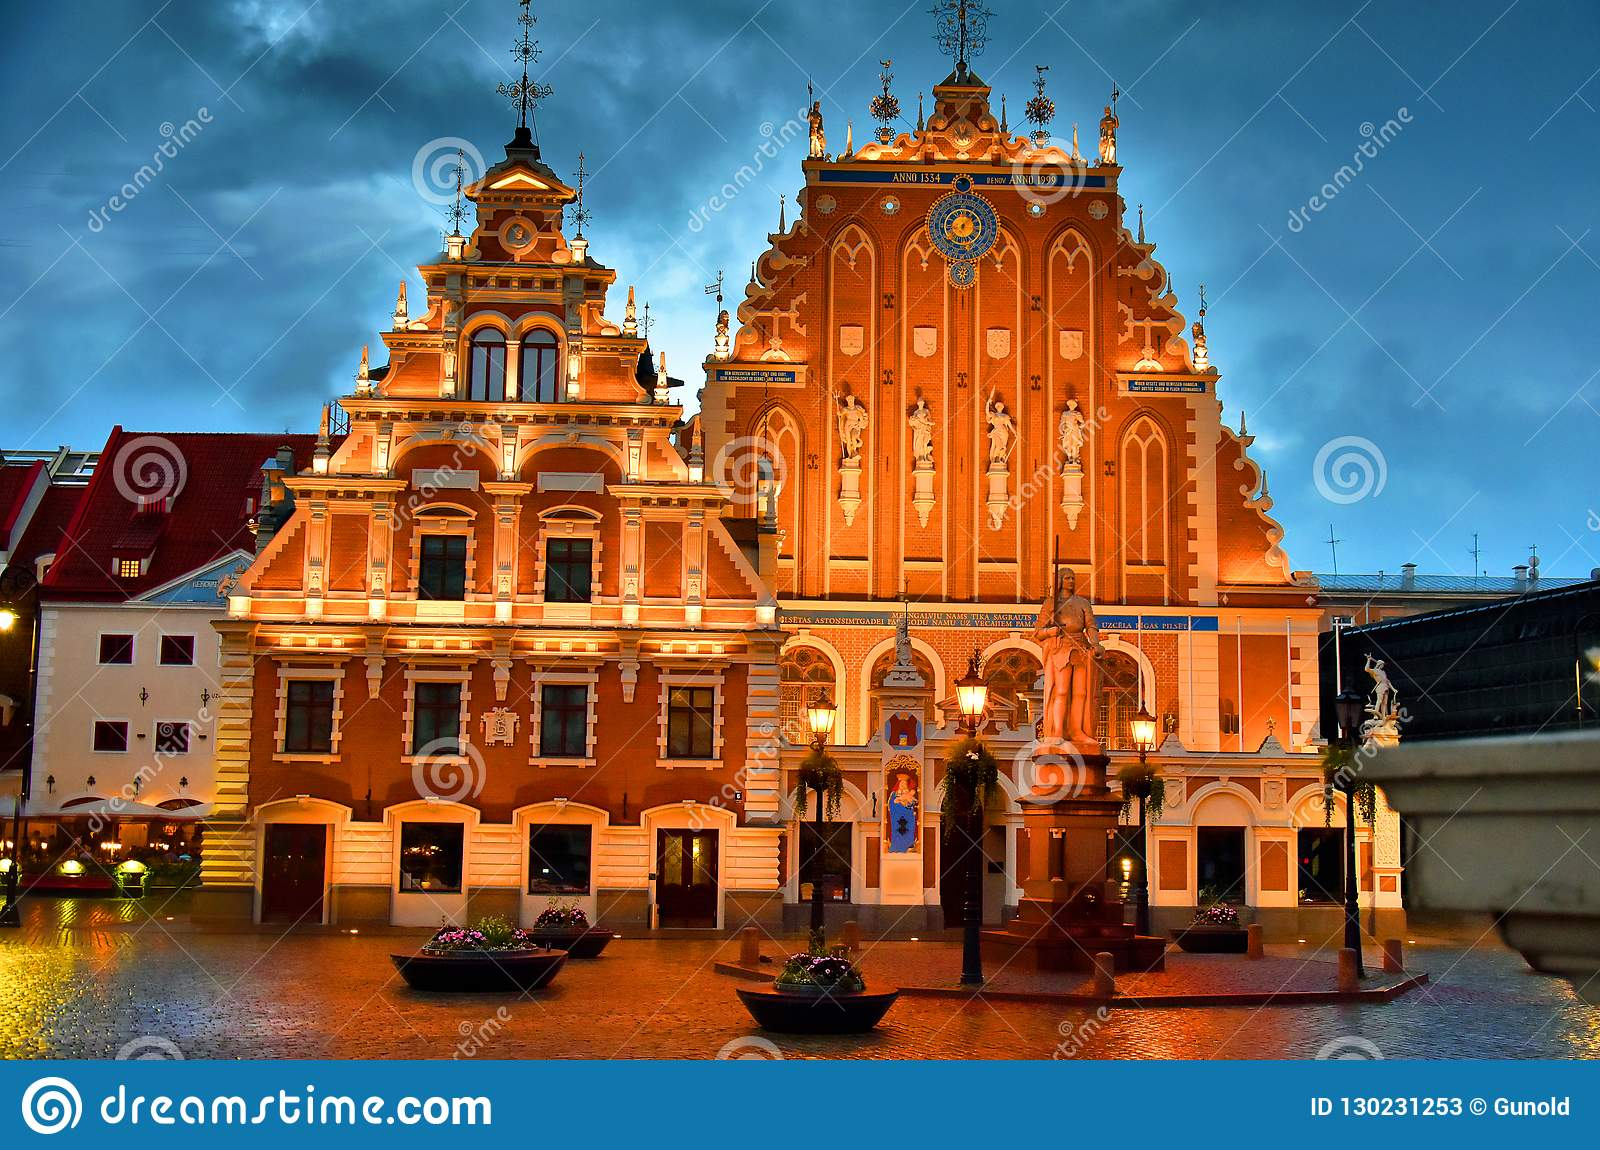 House of the Blackheads in the old town of Riga, Latvia